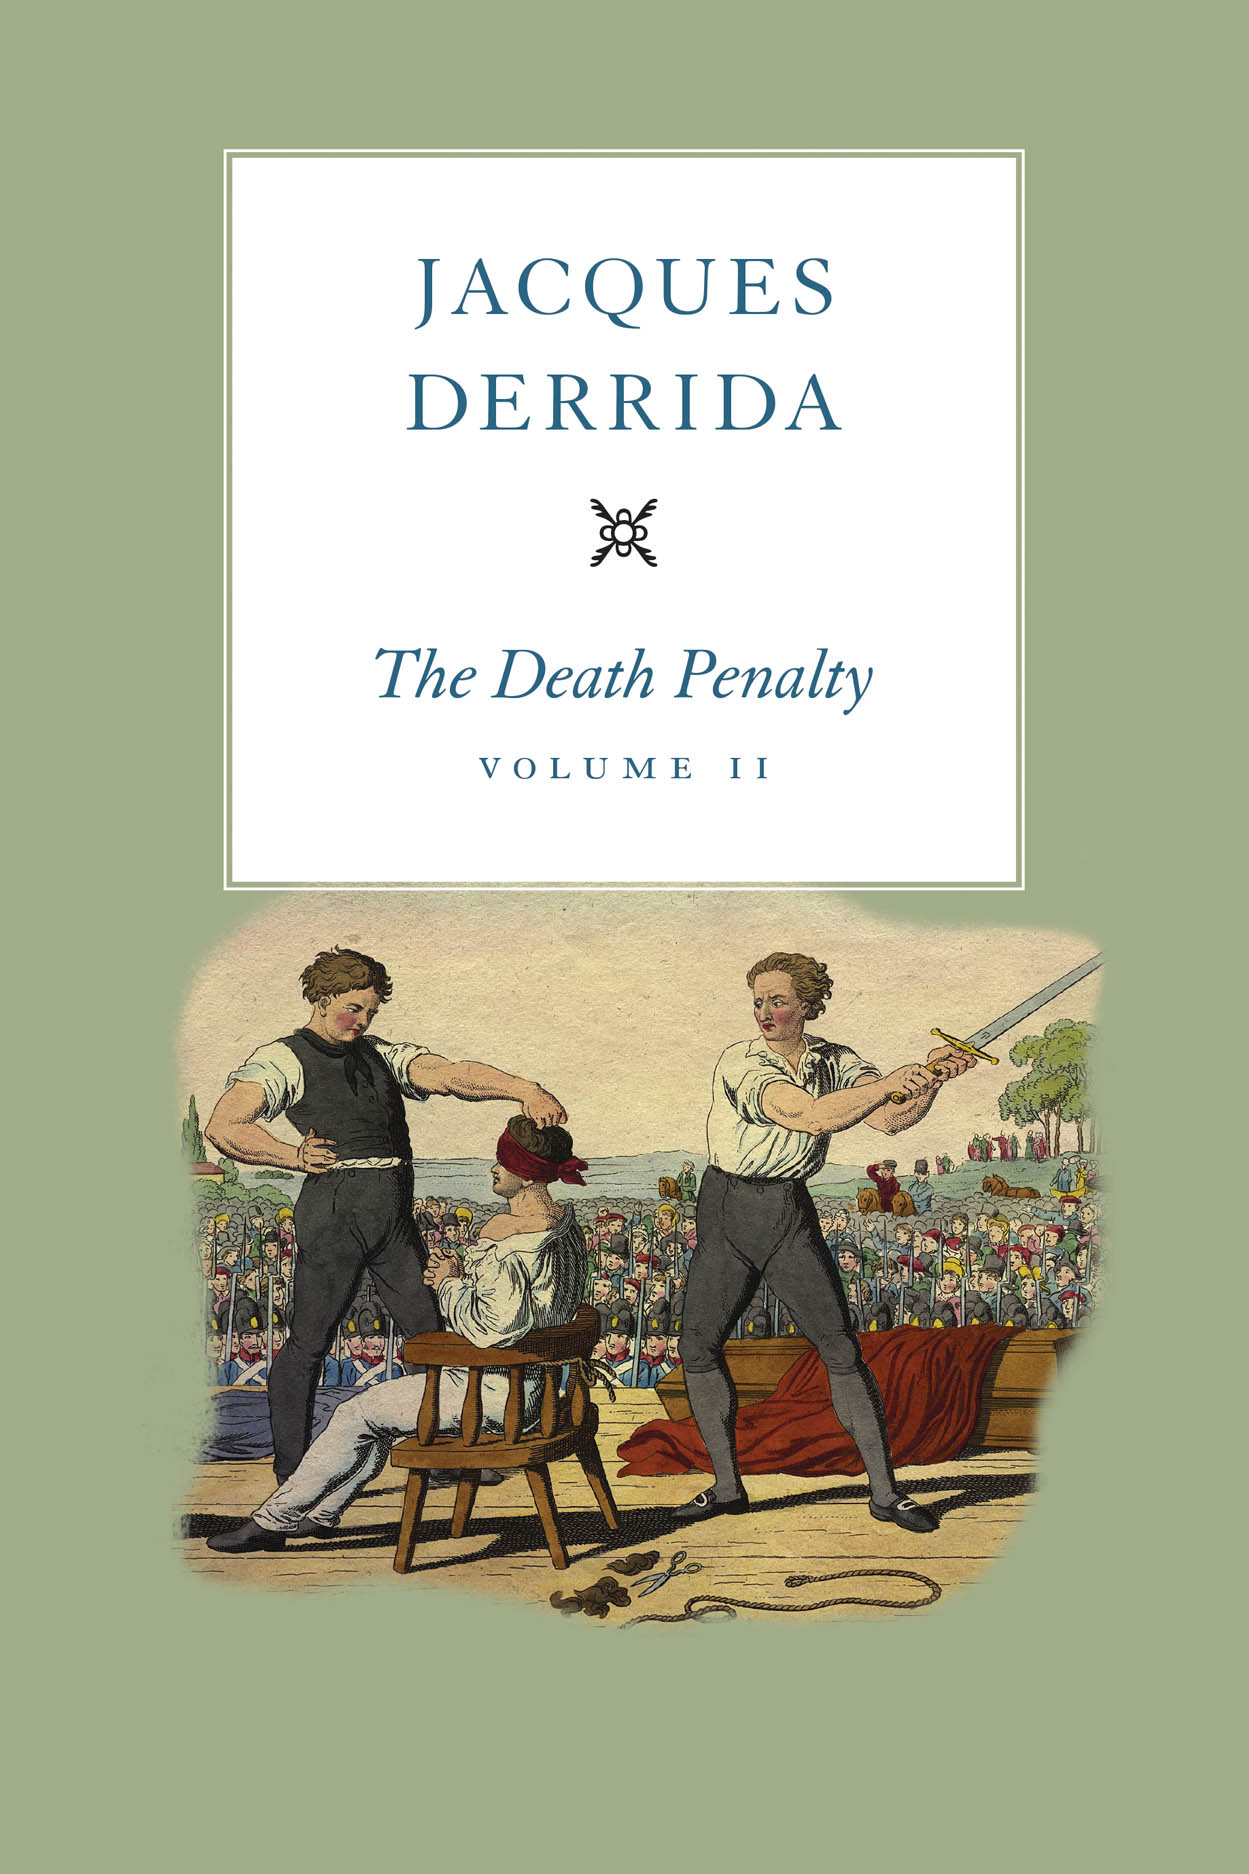 The Death Penalty, Volume I and Volume II Book Cover